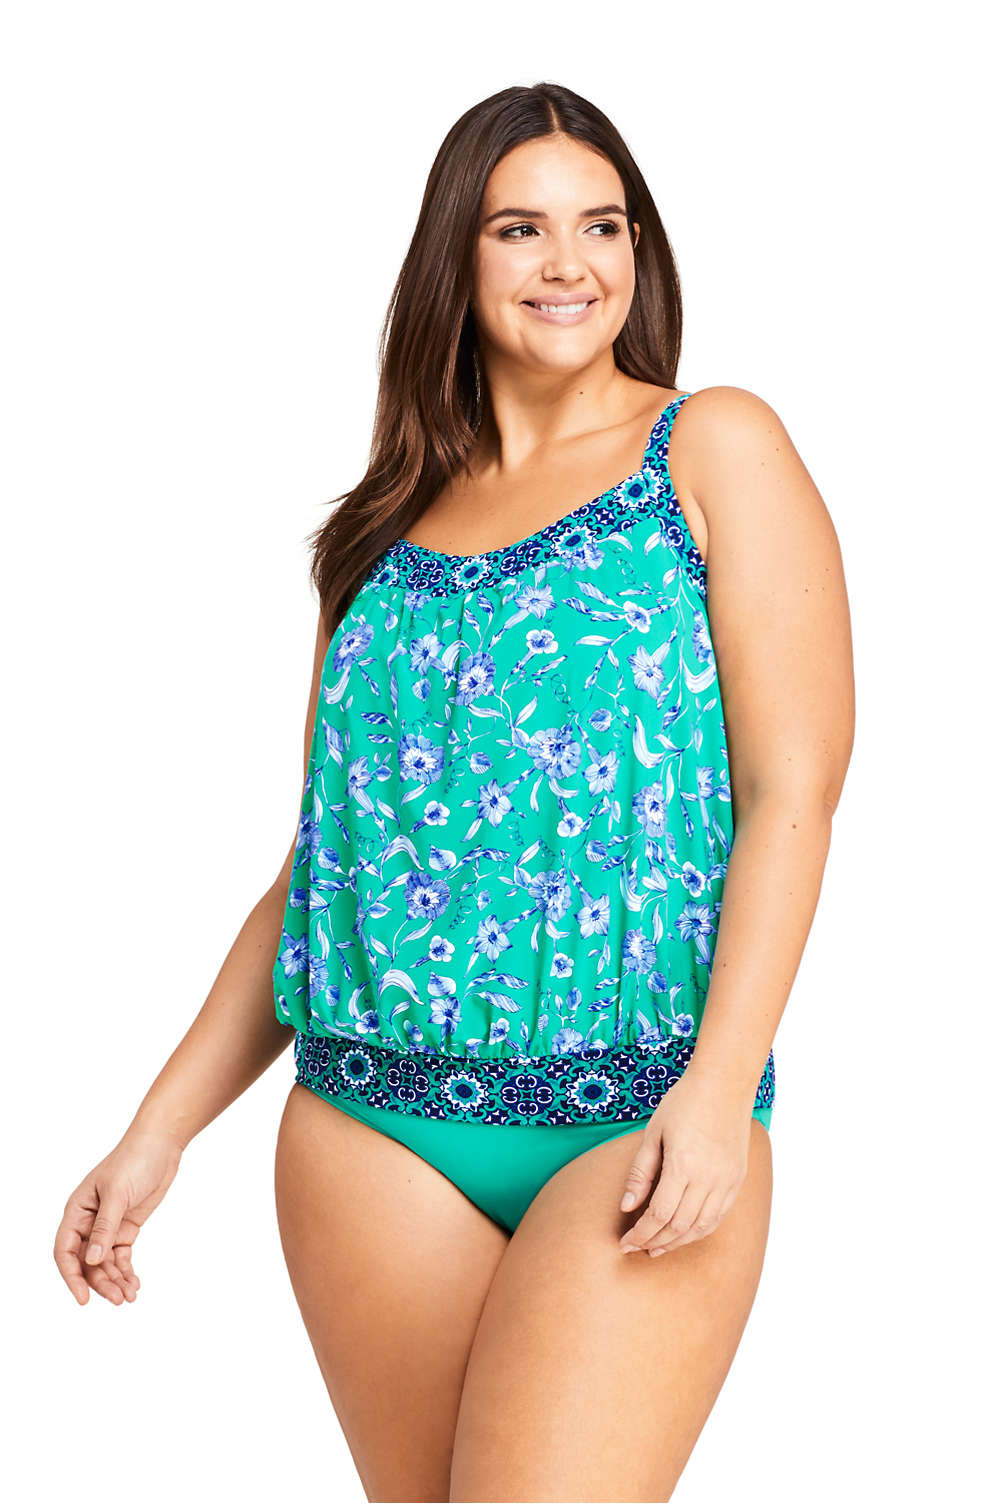 f0cfc53f1e Women's Plus Size Blouson Tankini Top Swimsuit Print from Lands' End